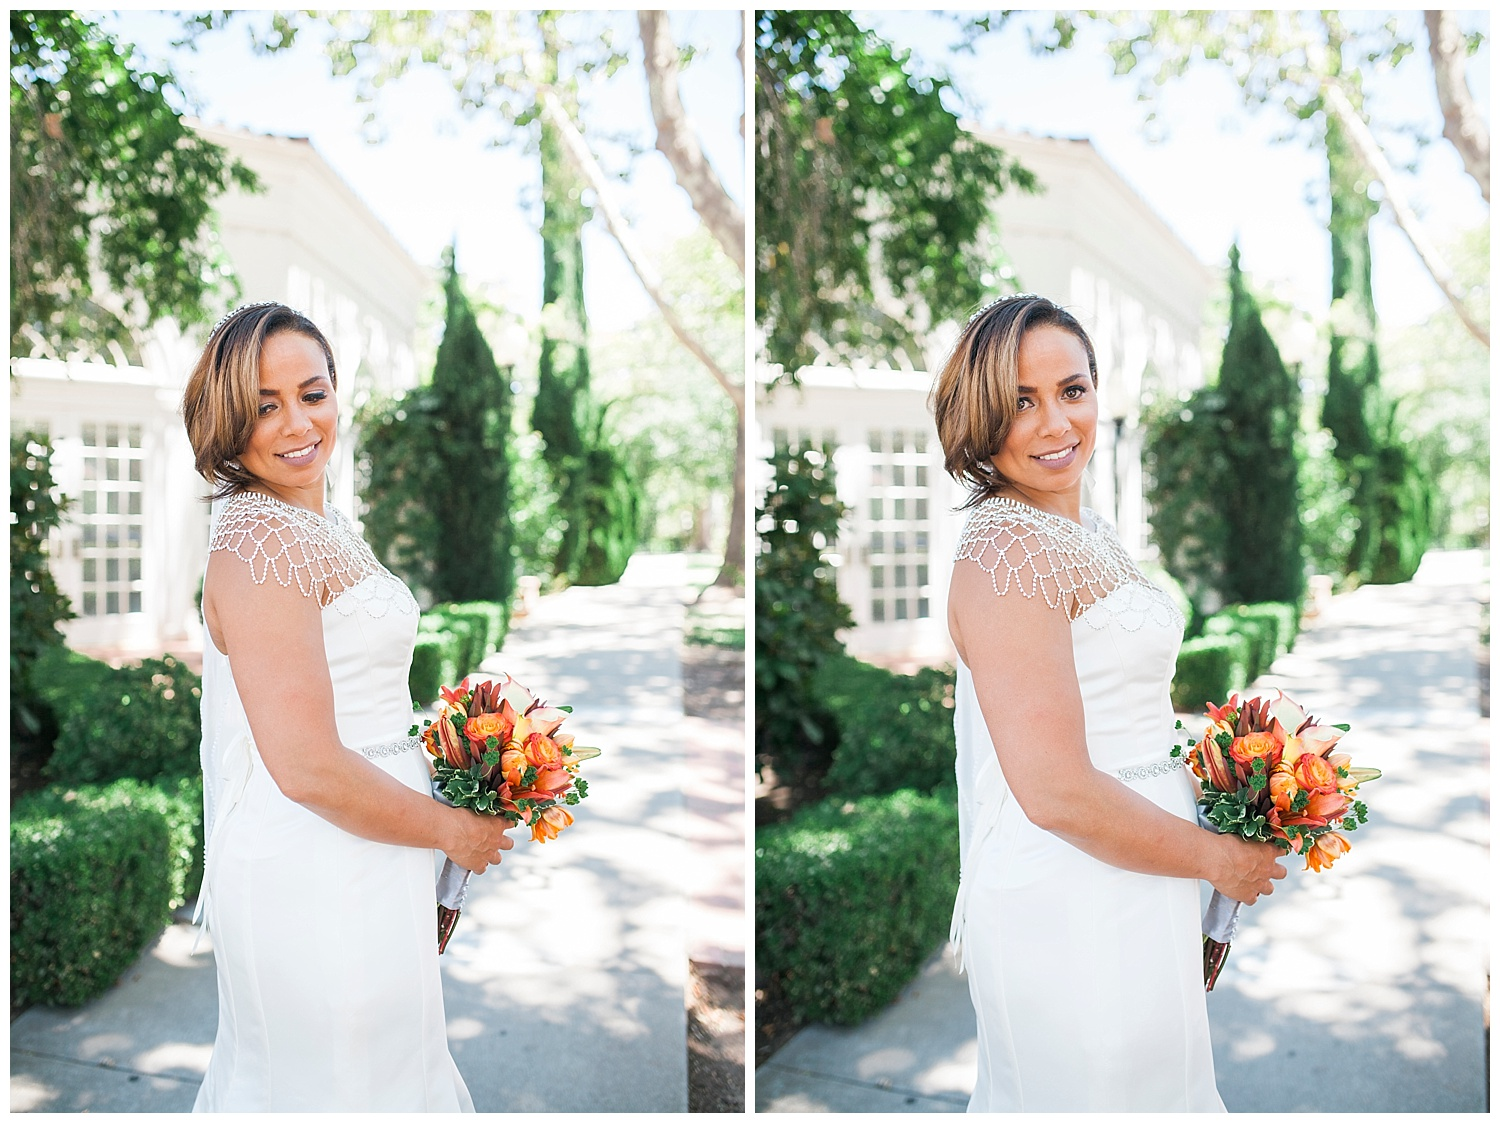 SACRAMENTO_WEDDING_VIZCAYA_PHOTOGRAPHY_SUNFLOWERS_NICOLEQUIROZ_16.jpg